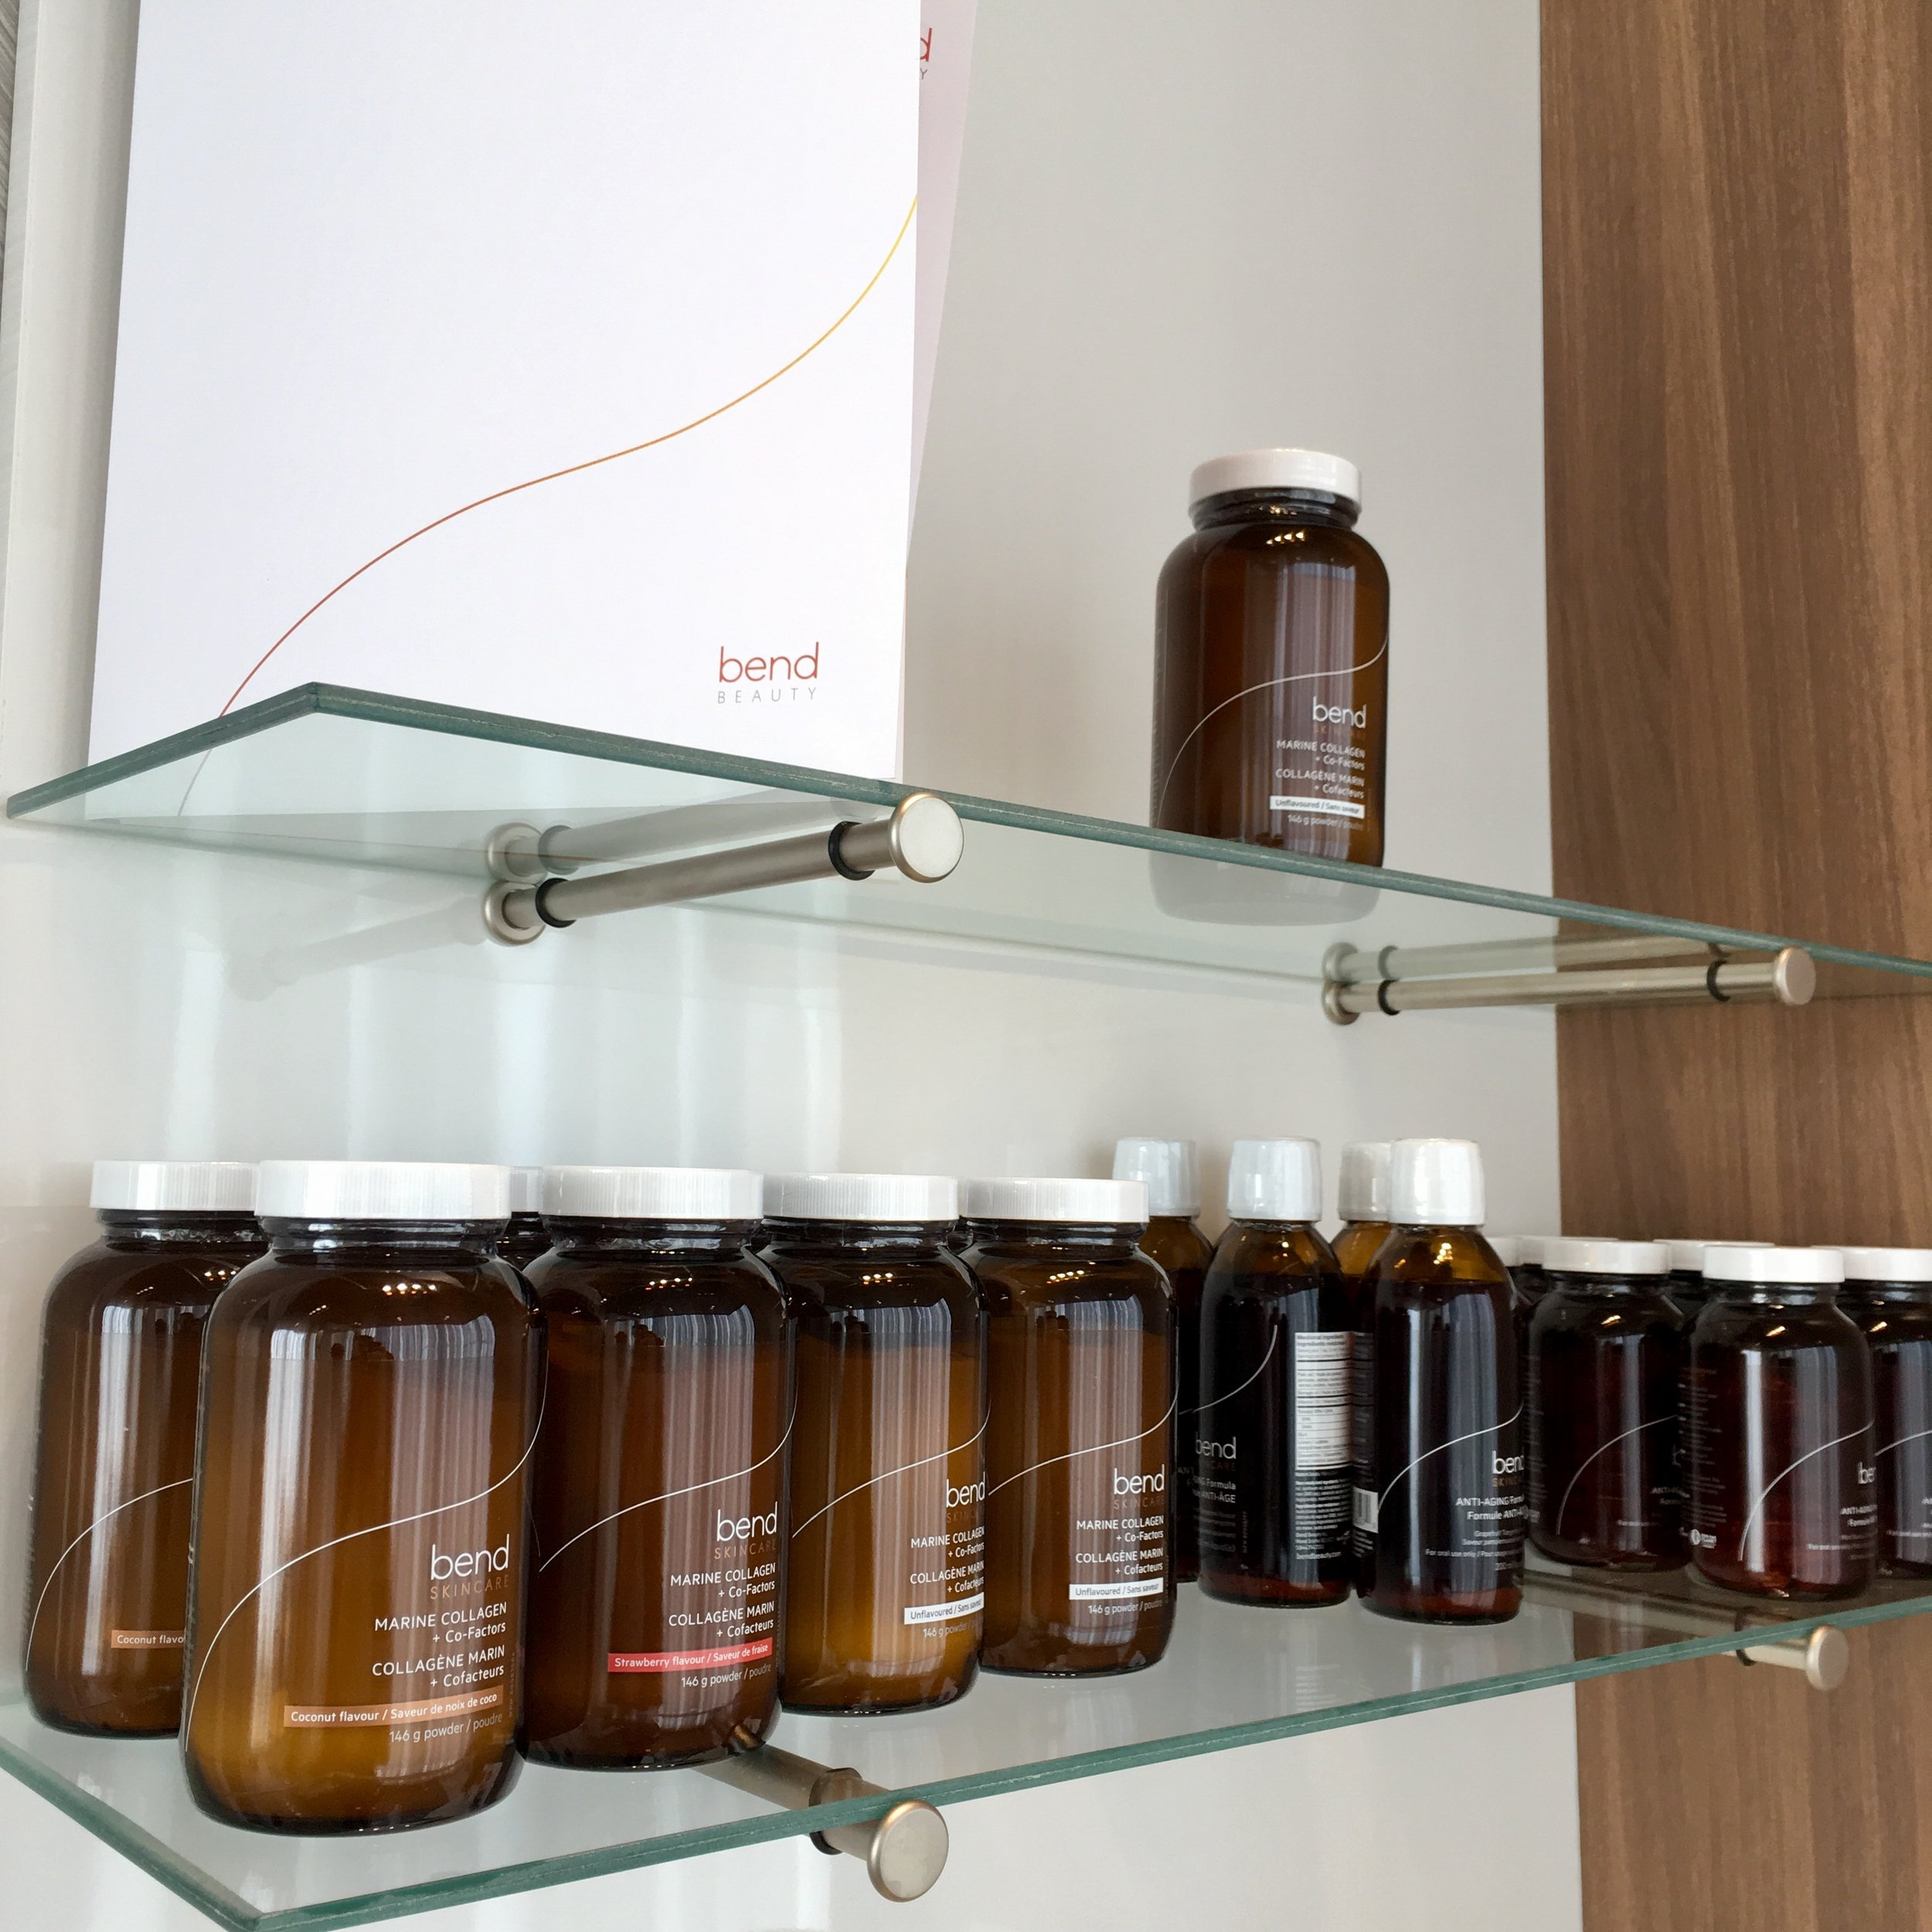 Bend Skincare Product Line at Portland Street Spa